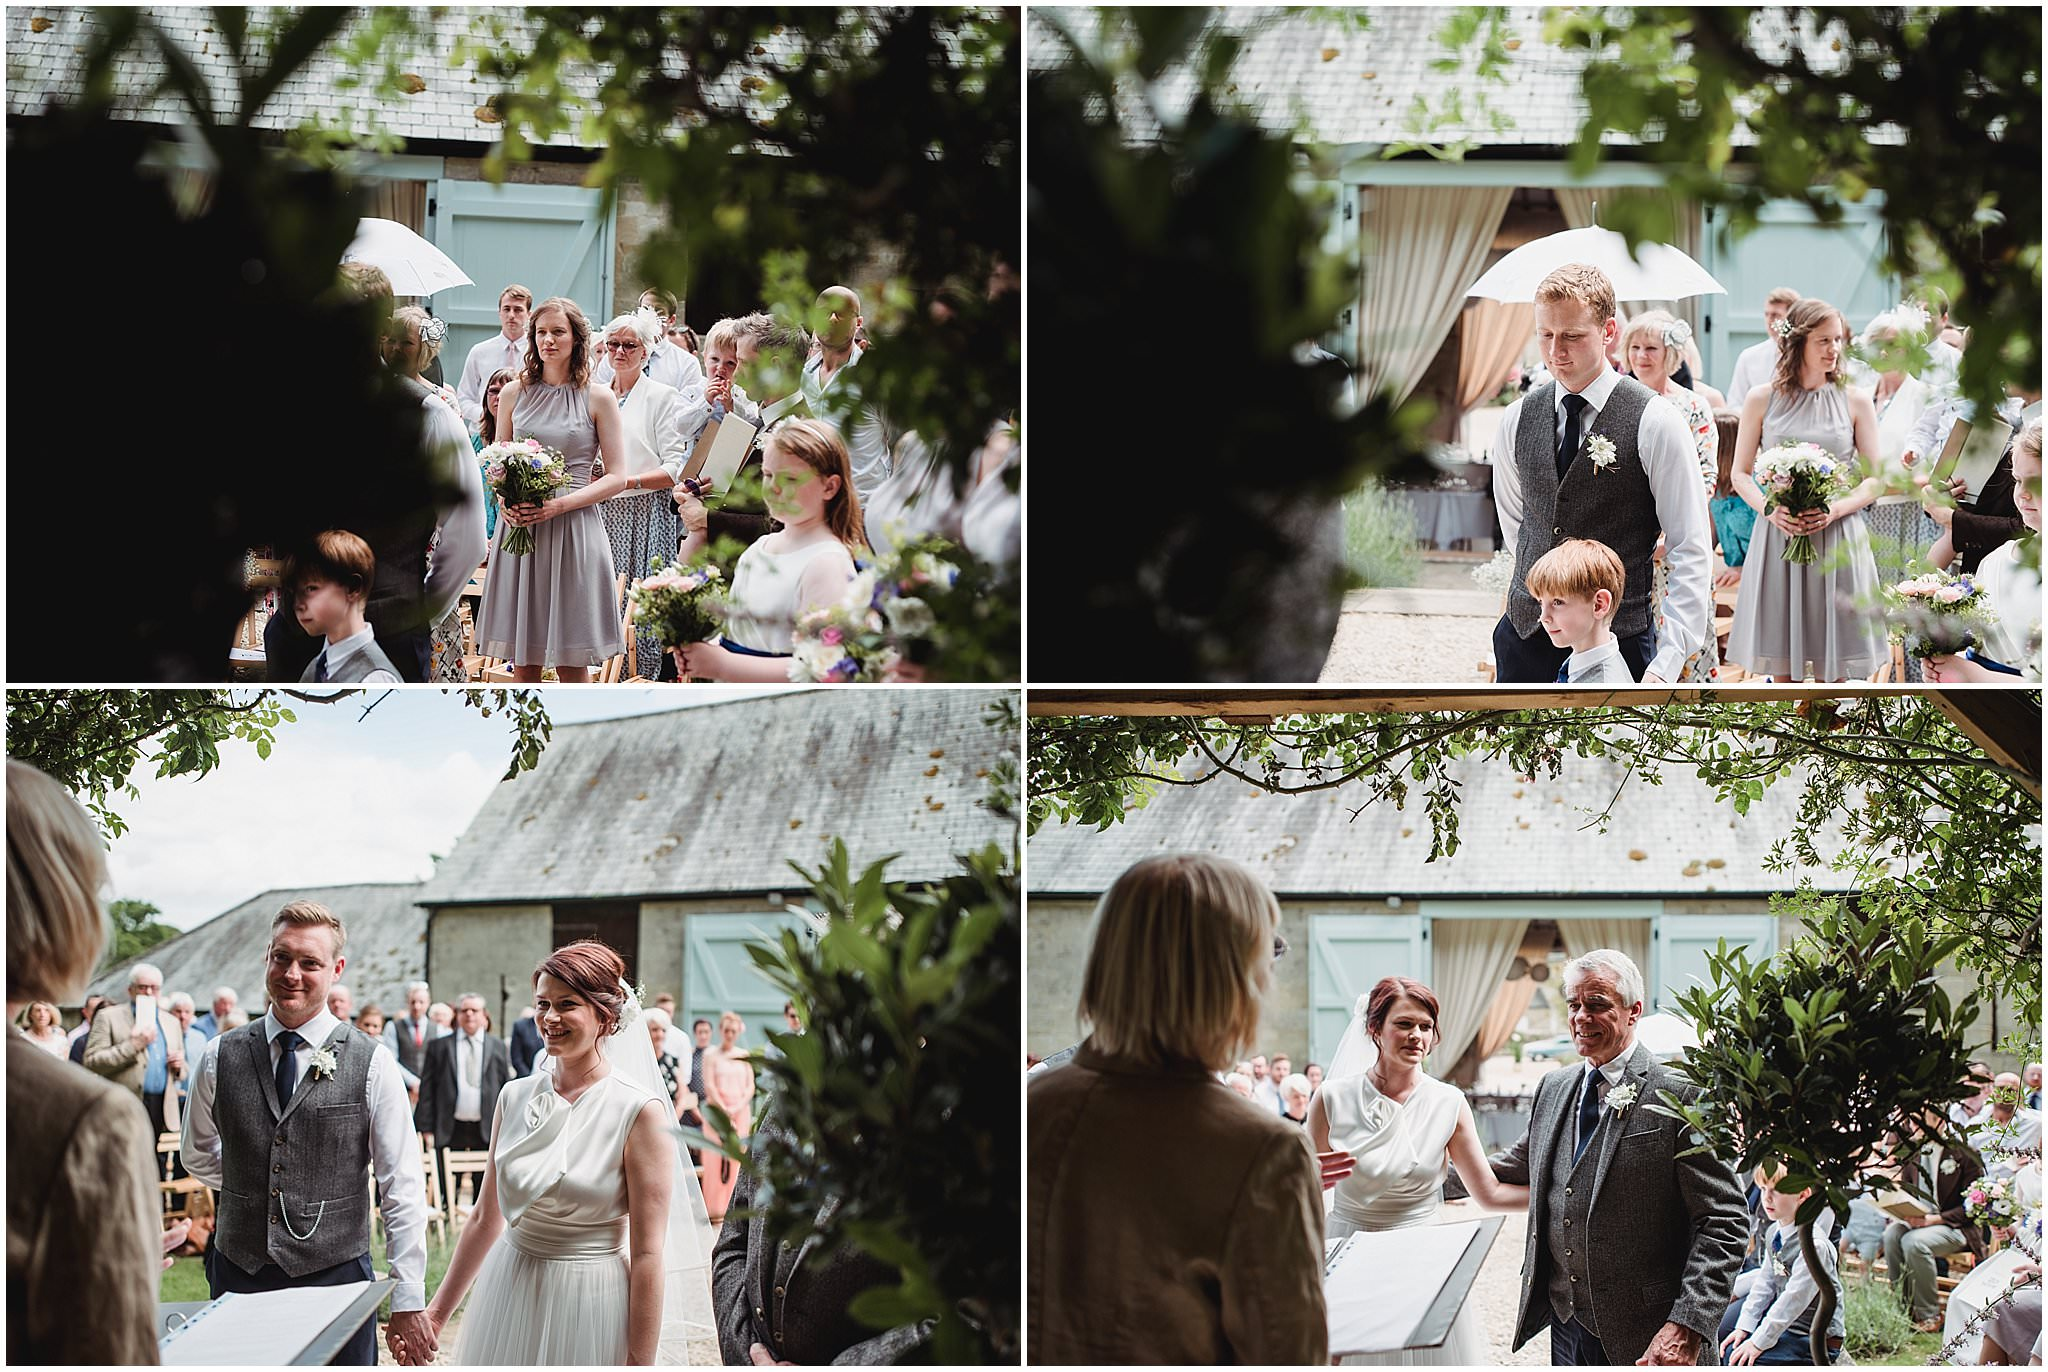 fay & tim wedding at ashley wood farm_0461